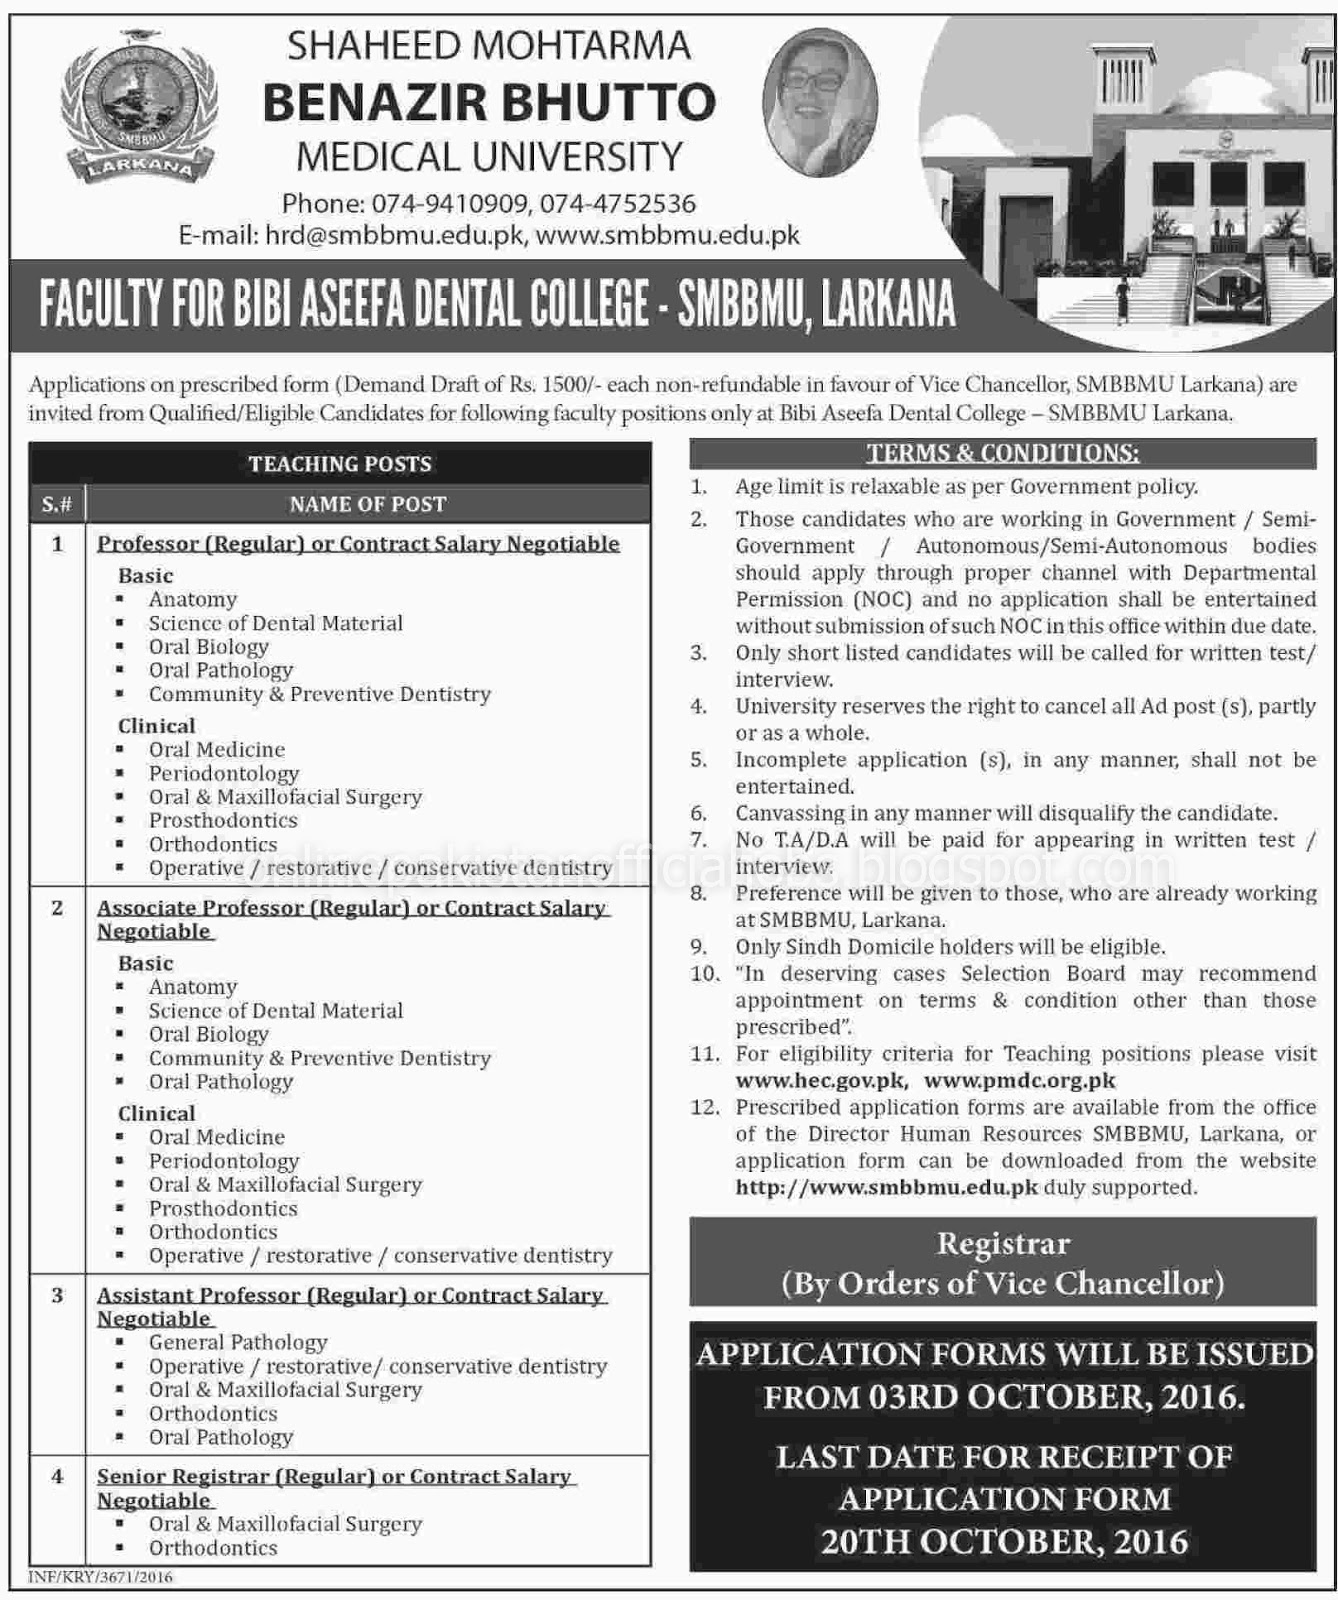 Shaheed Mohtarma Benazir Bhutto Medical University Larkana Jobs